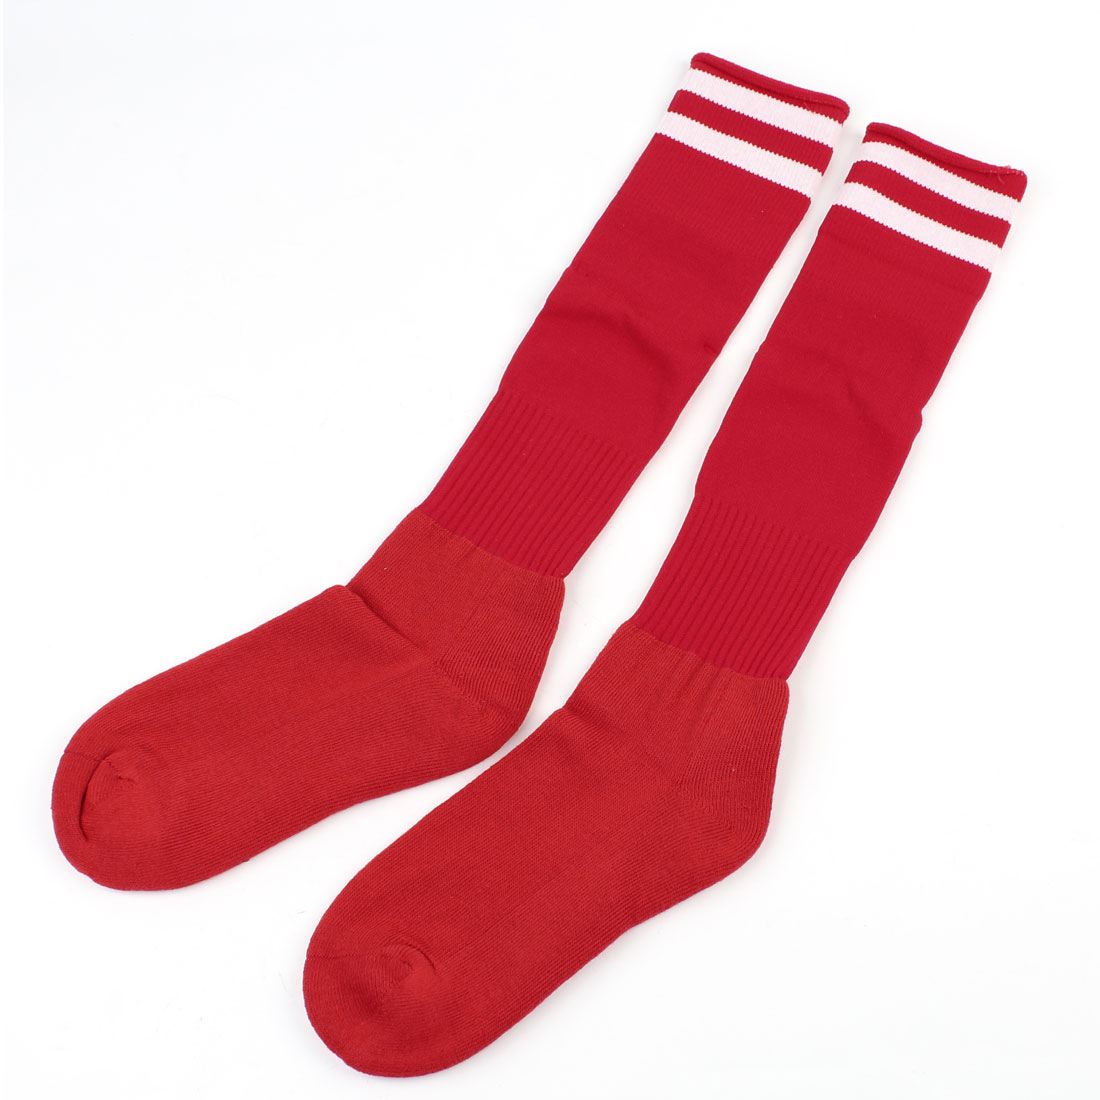 Pair Knee High Striped Elastic Soccer Football Sports Socks White Red for Boy